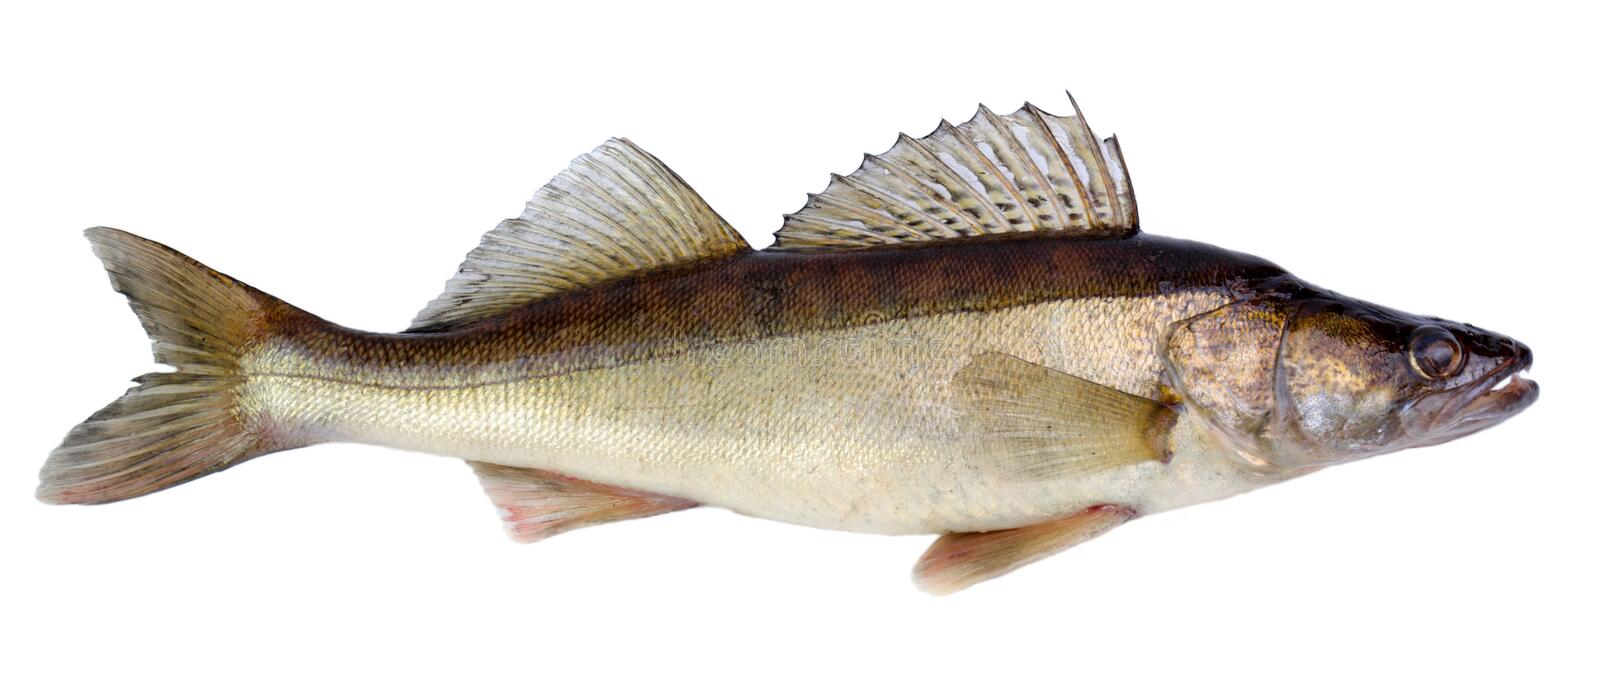 European walleye fish stock image image of predator for Best time to fish for walleye